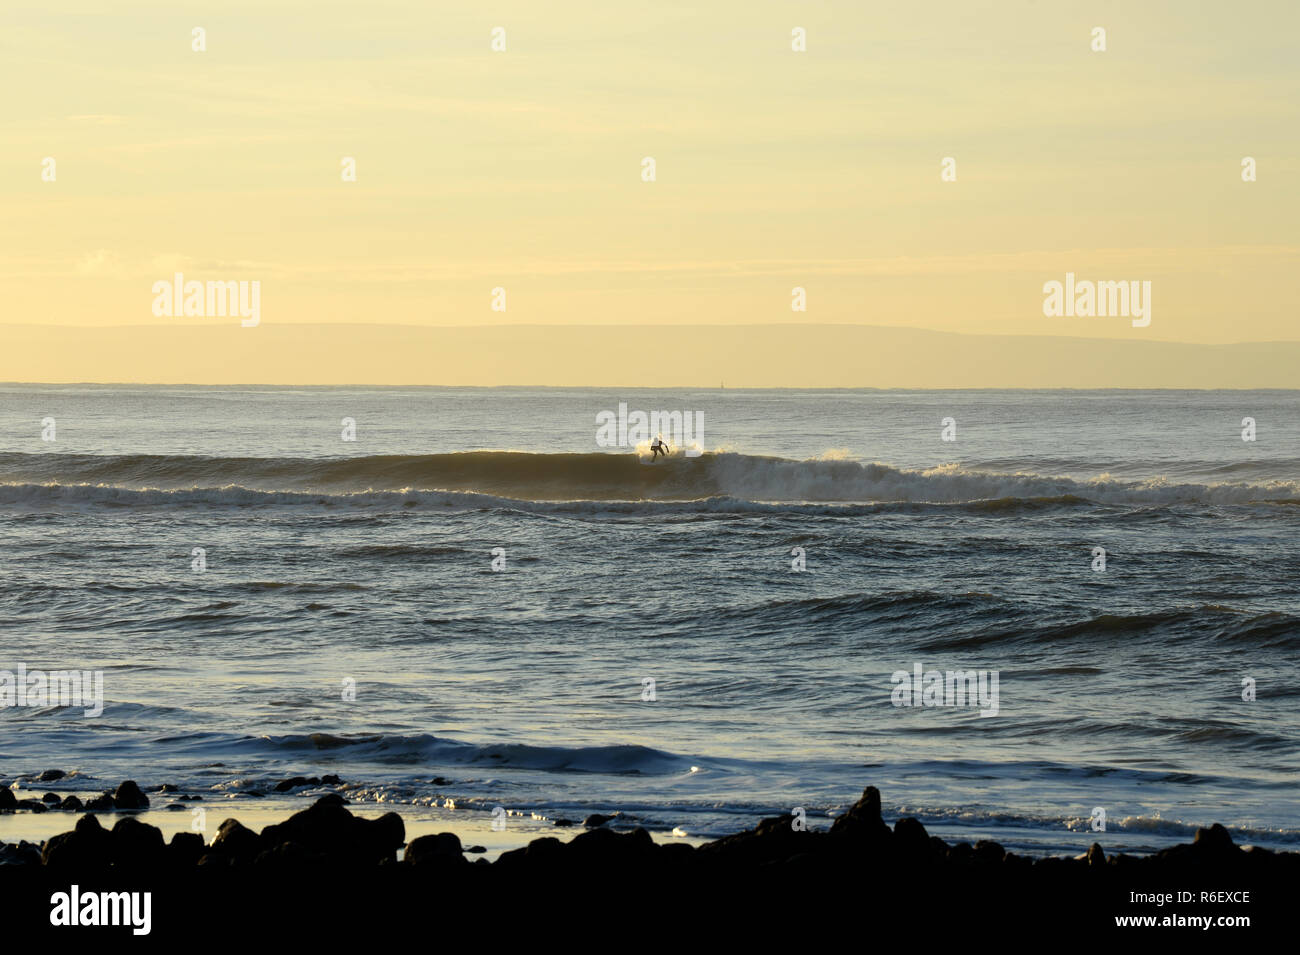 Surfer on crest of wave at Crab Island, Gower Stock Photo